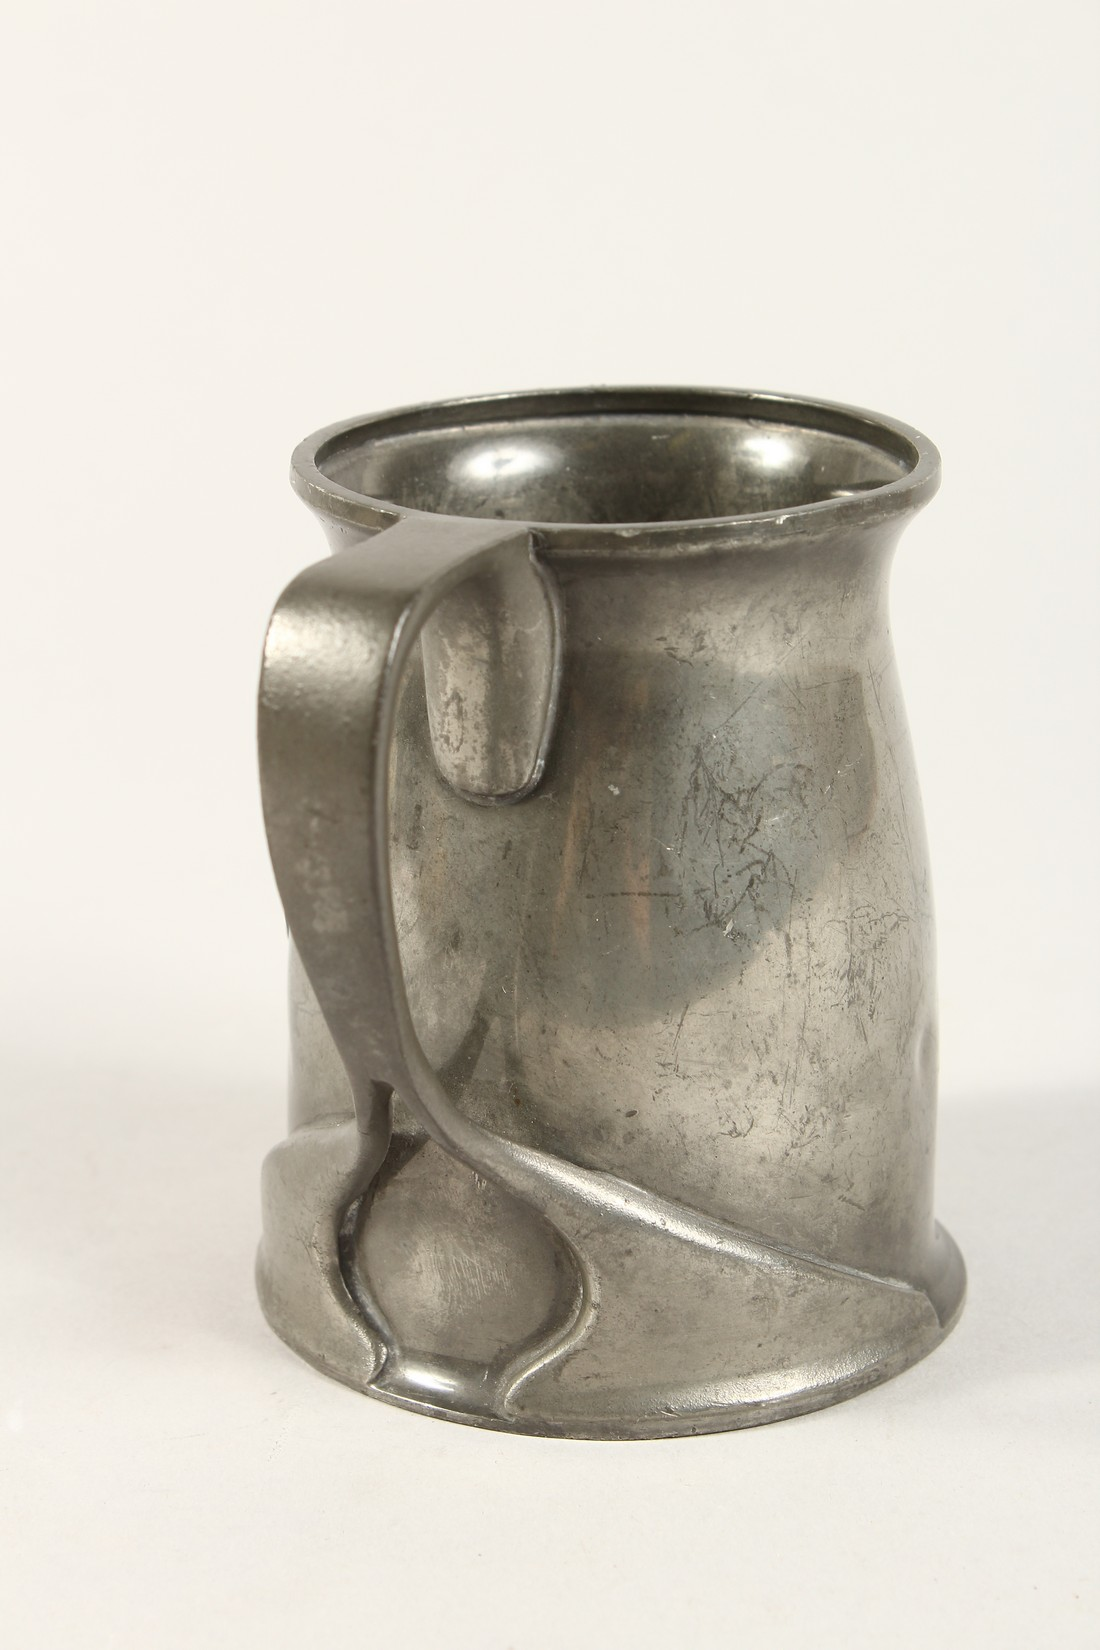 A TUDRIC ARCHIBALD KNOX PEWTER TANKARD with an oval of a golfer No. 066 4.25ins high. - Image 3 of 6